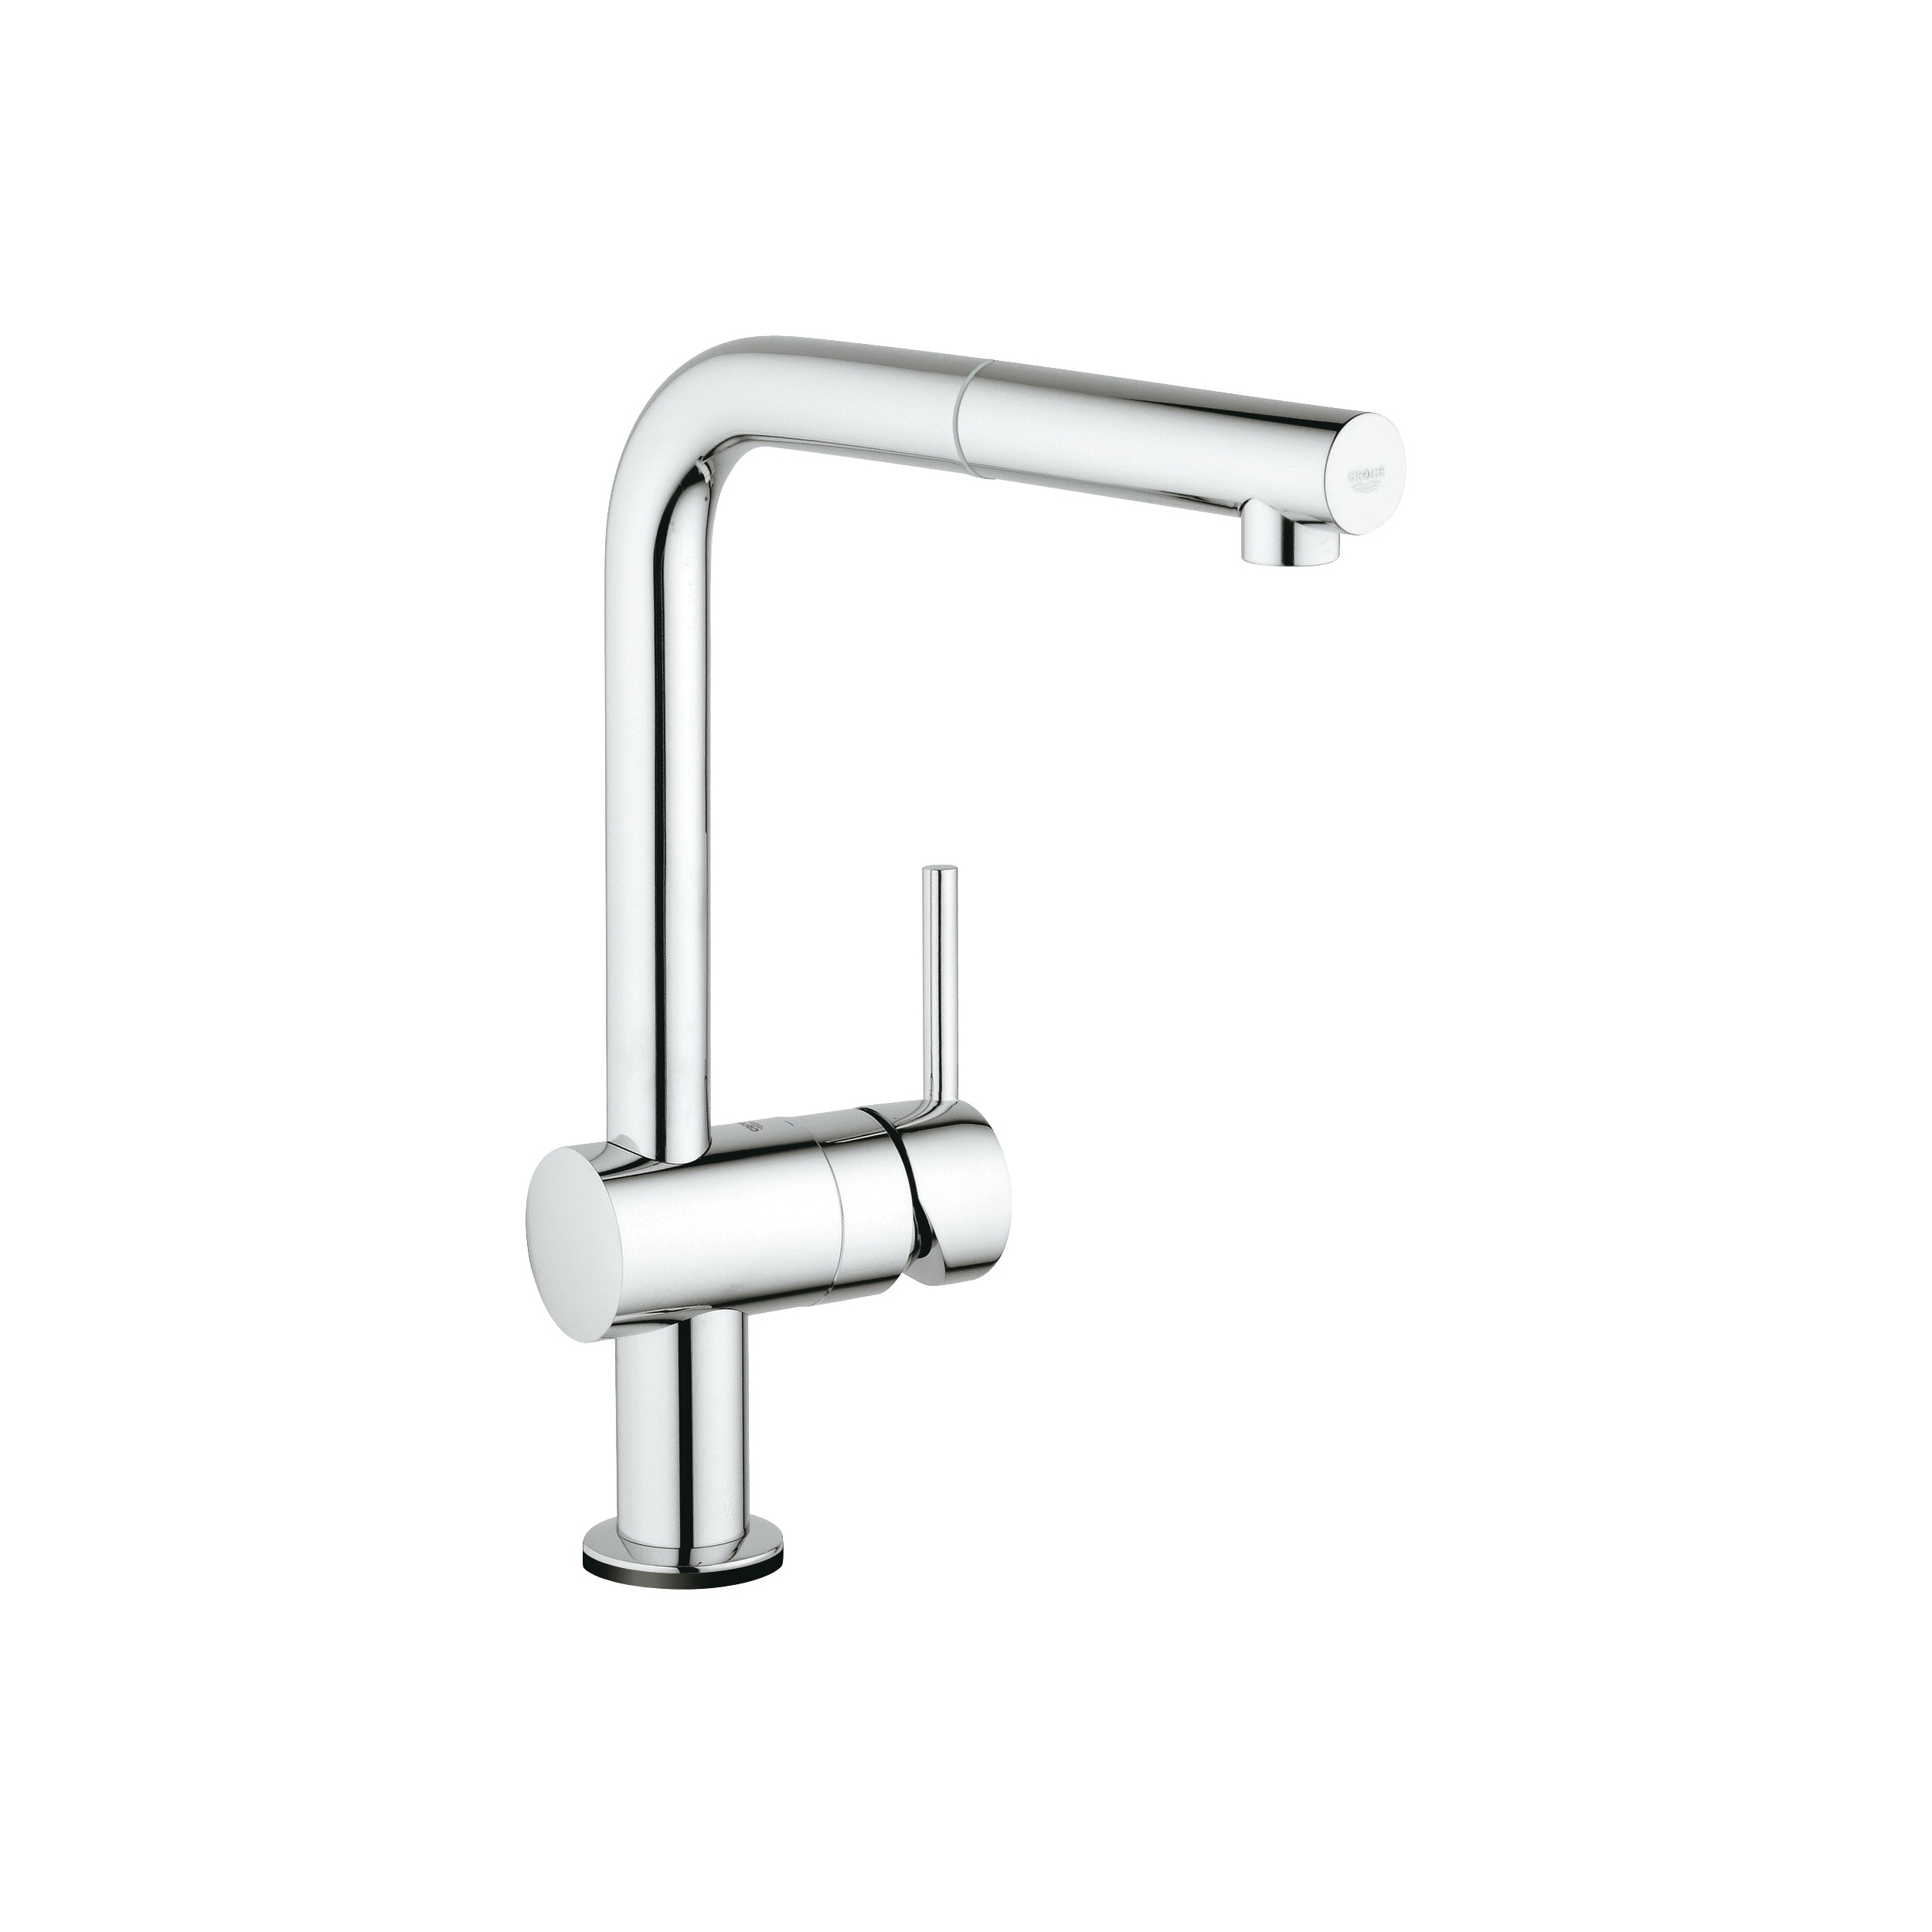 GROHE 30218001 Minta Kitchen Faucet With Touch Technology, 1.75 gpm, 1 Faucet Hole, StarLight® Chrome, 1 Handle, Import, Residential